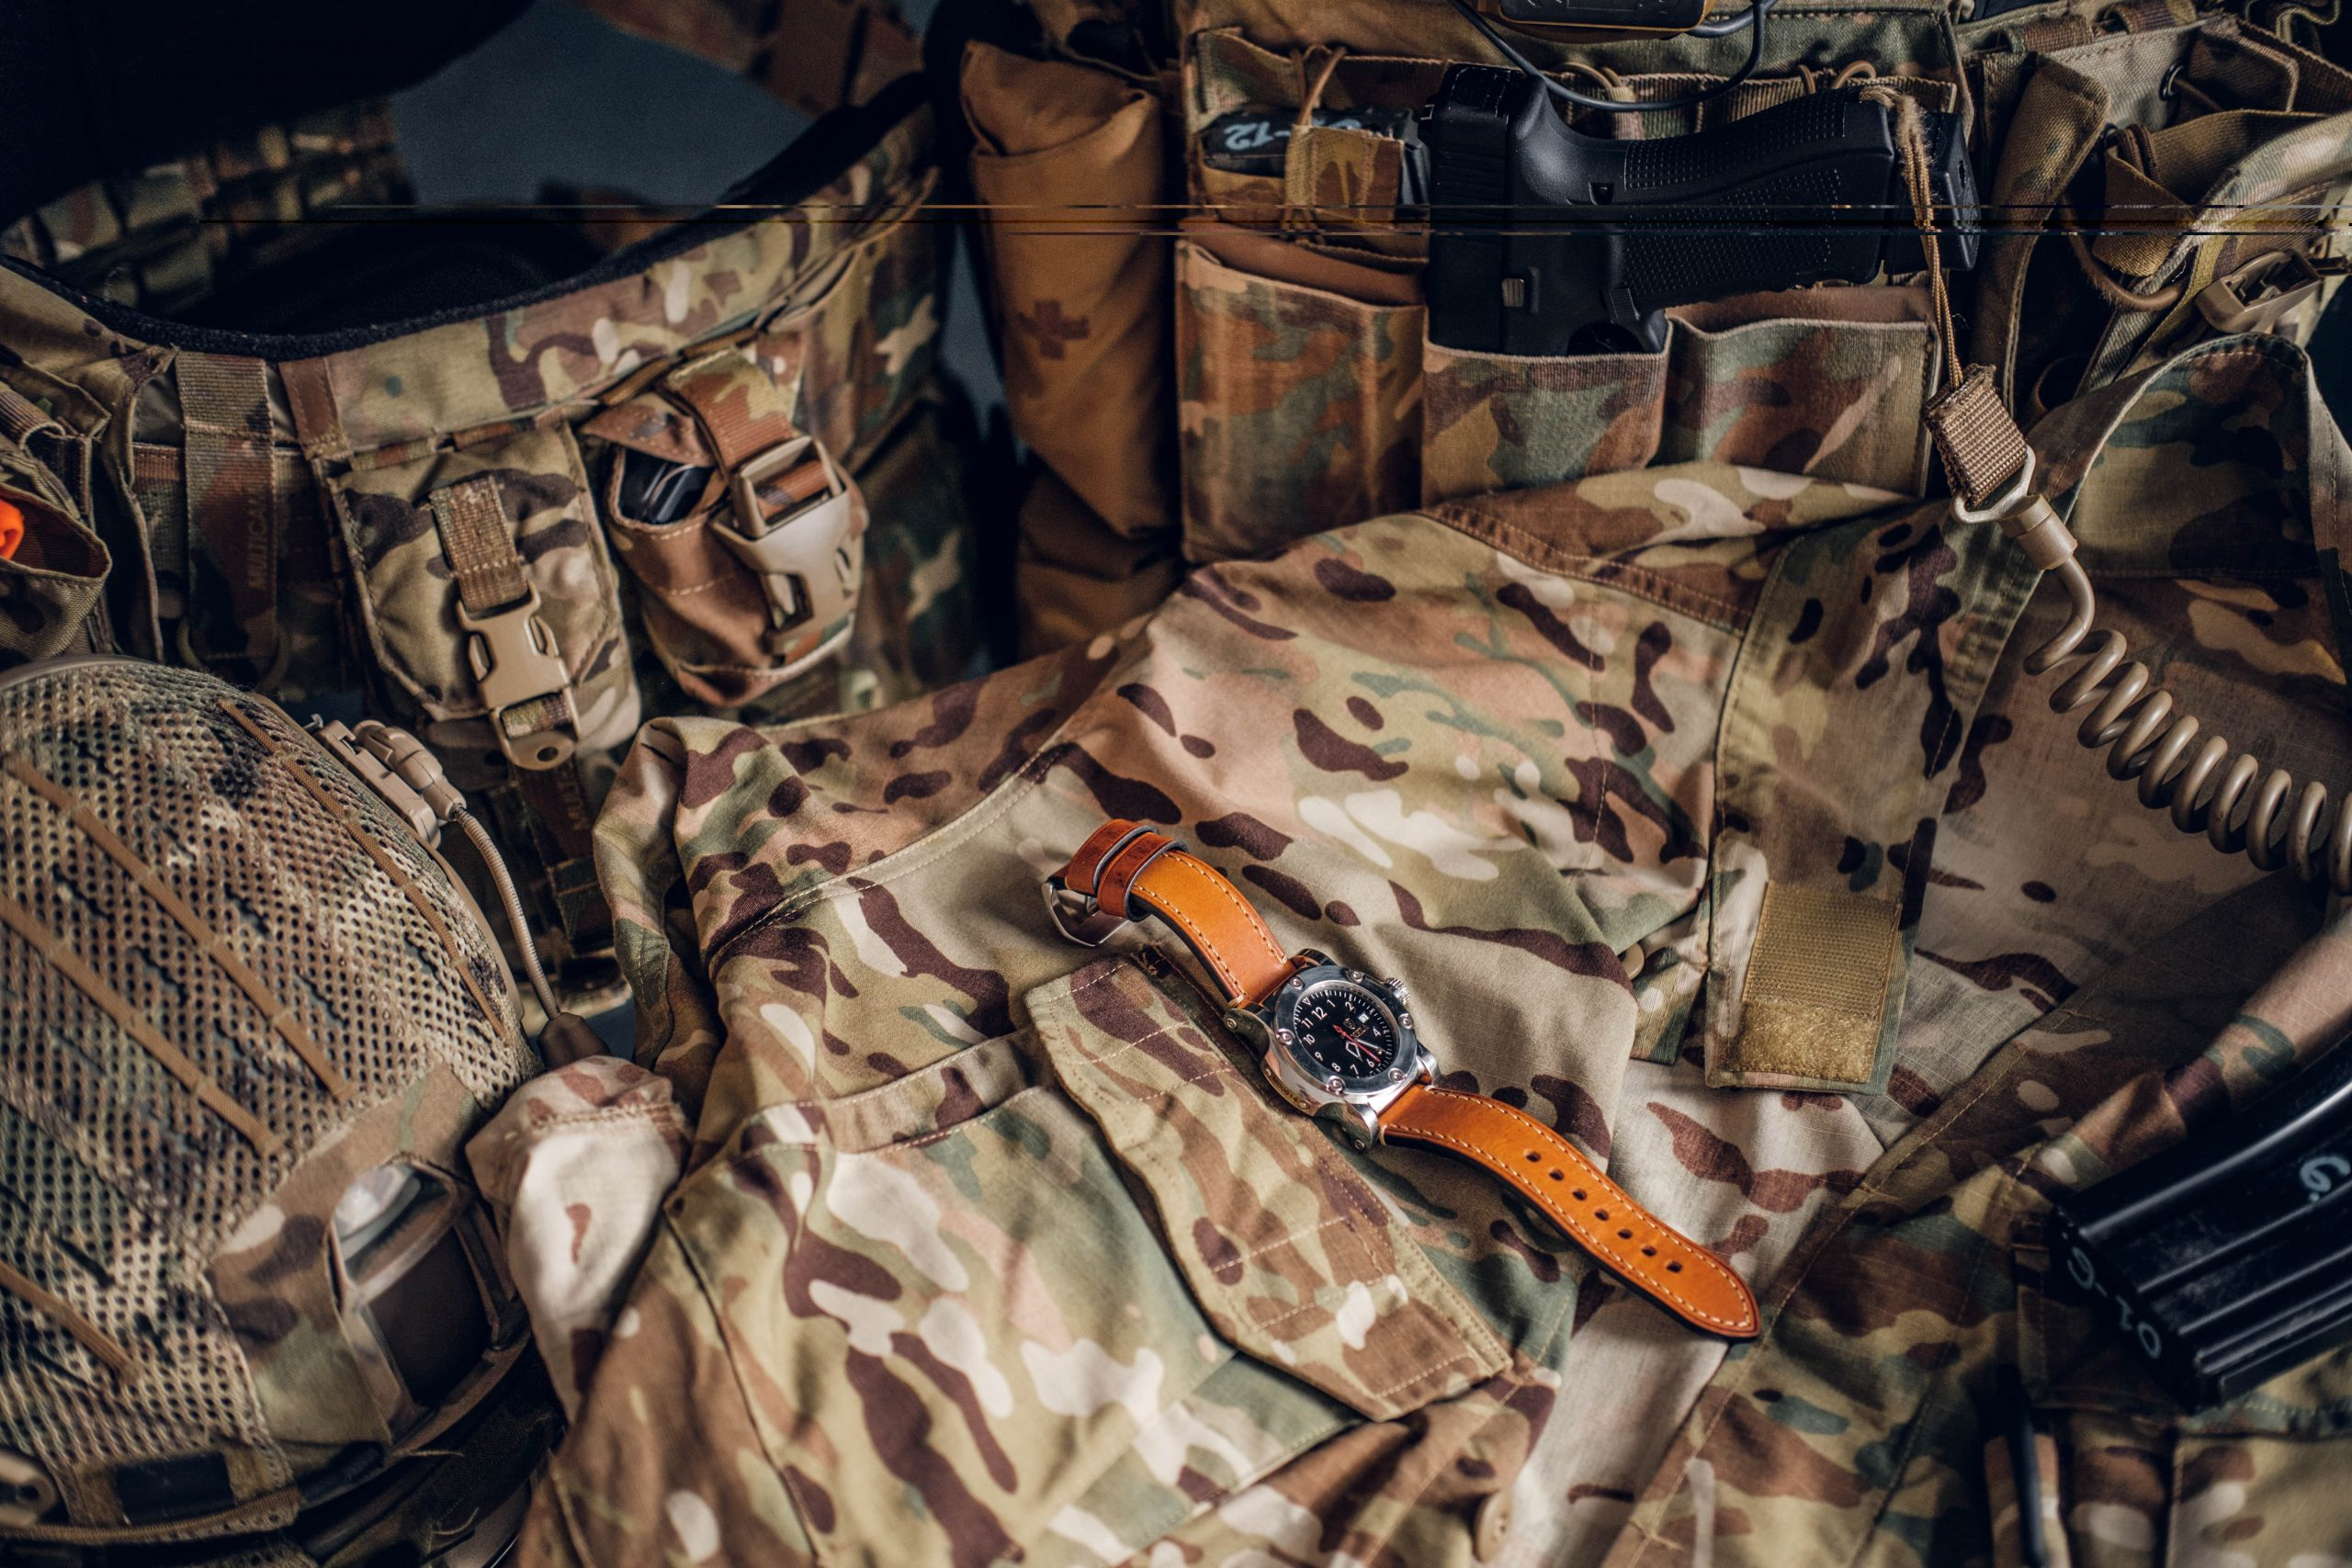 nice-watch-with-military-uniform-on-the-table-GZLPYH3